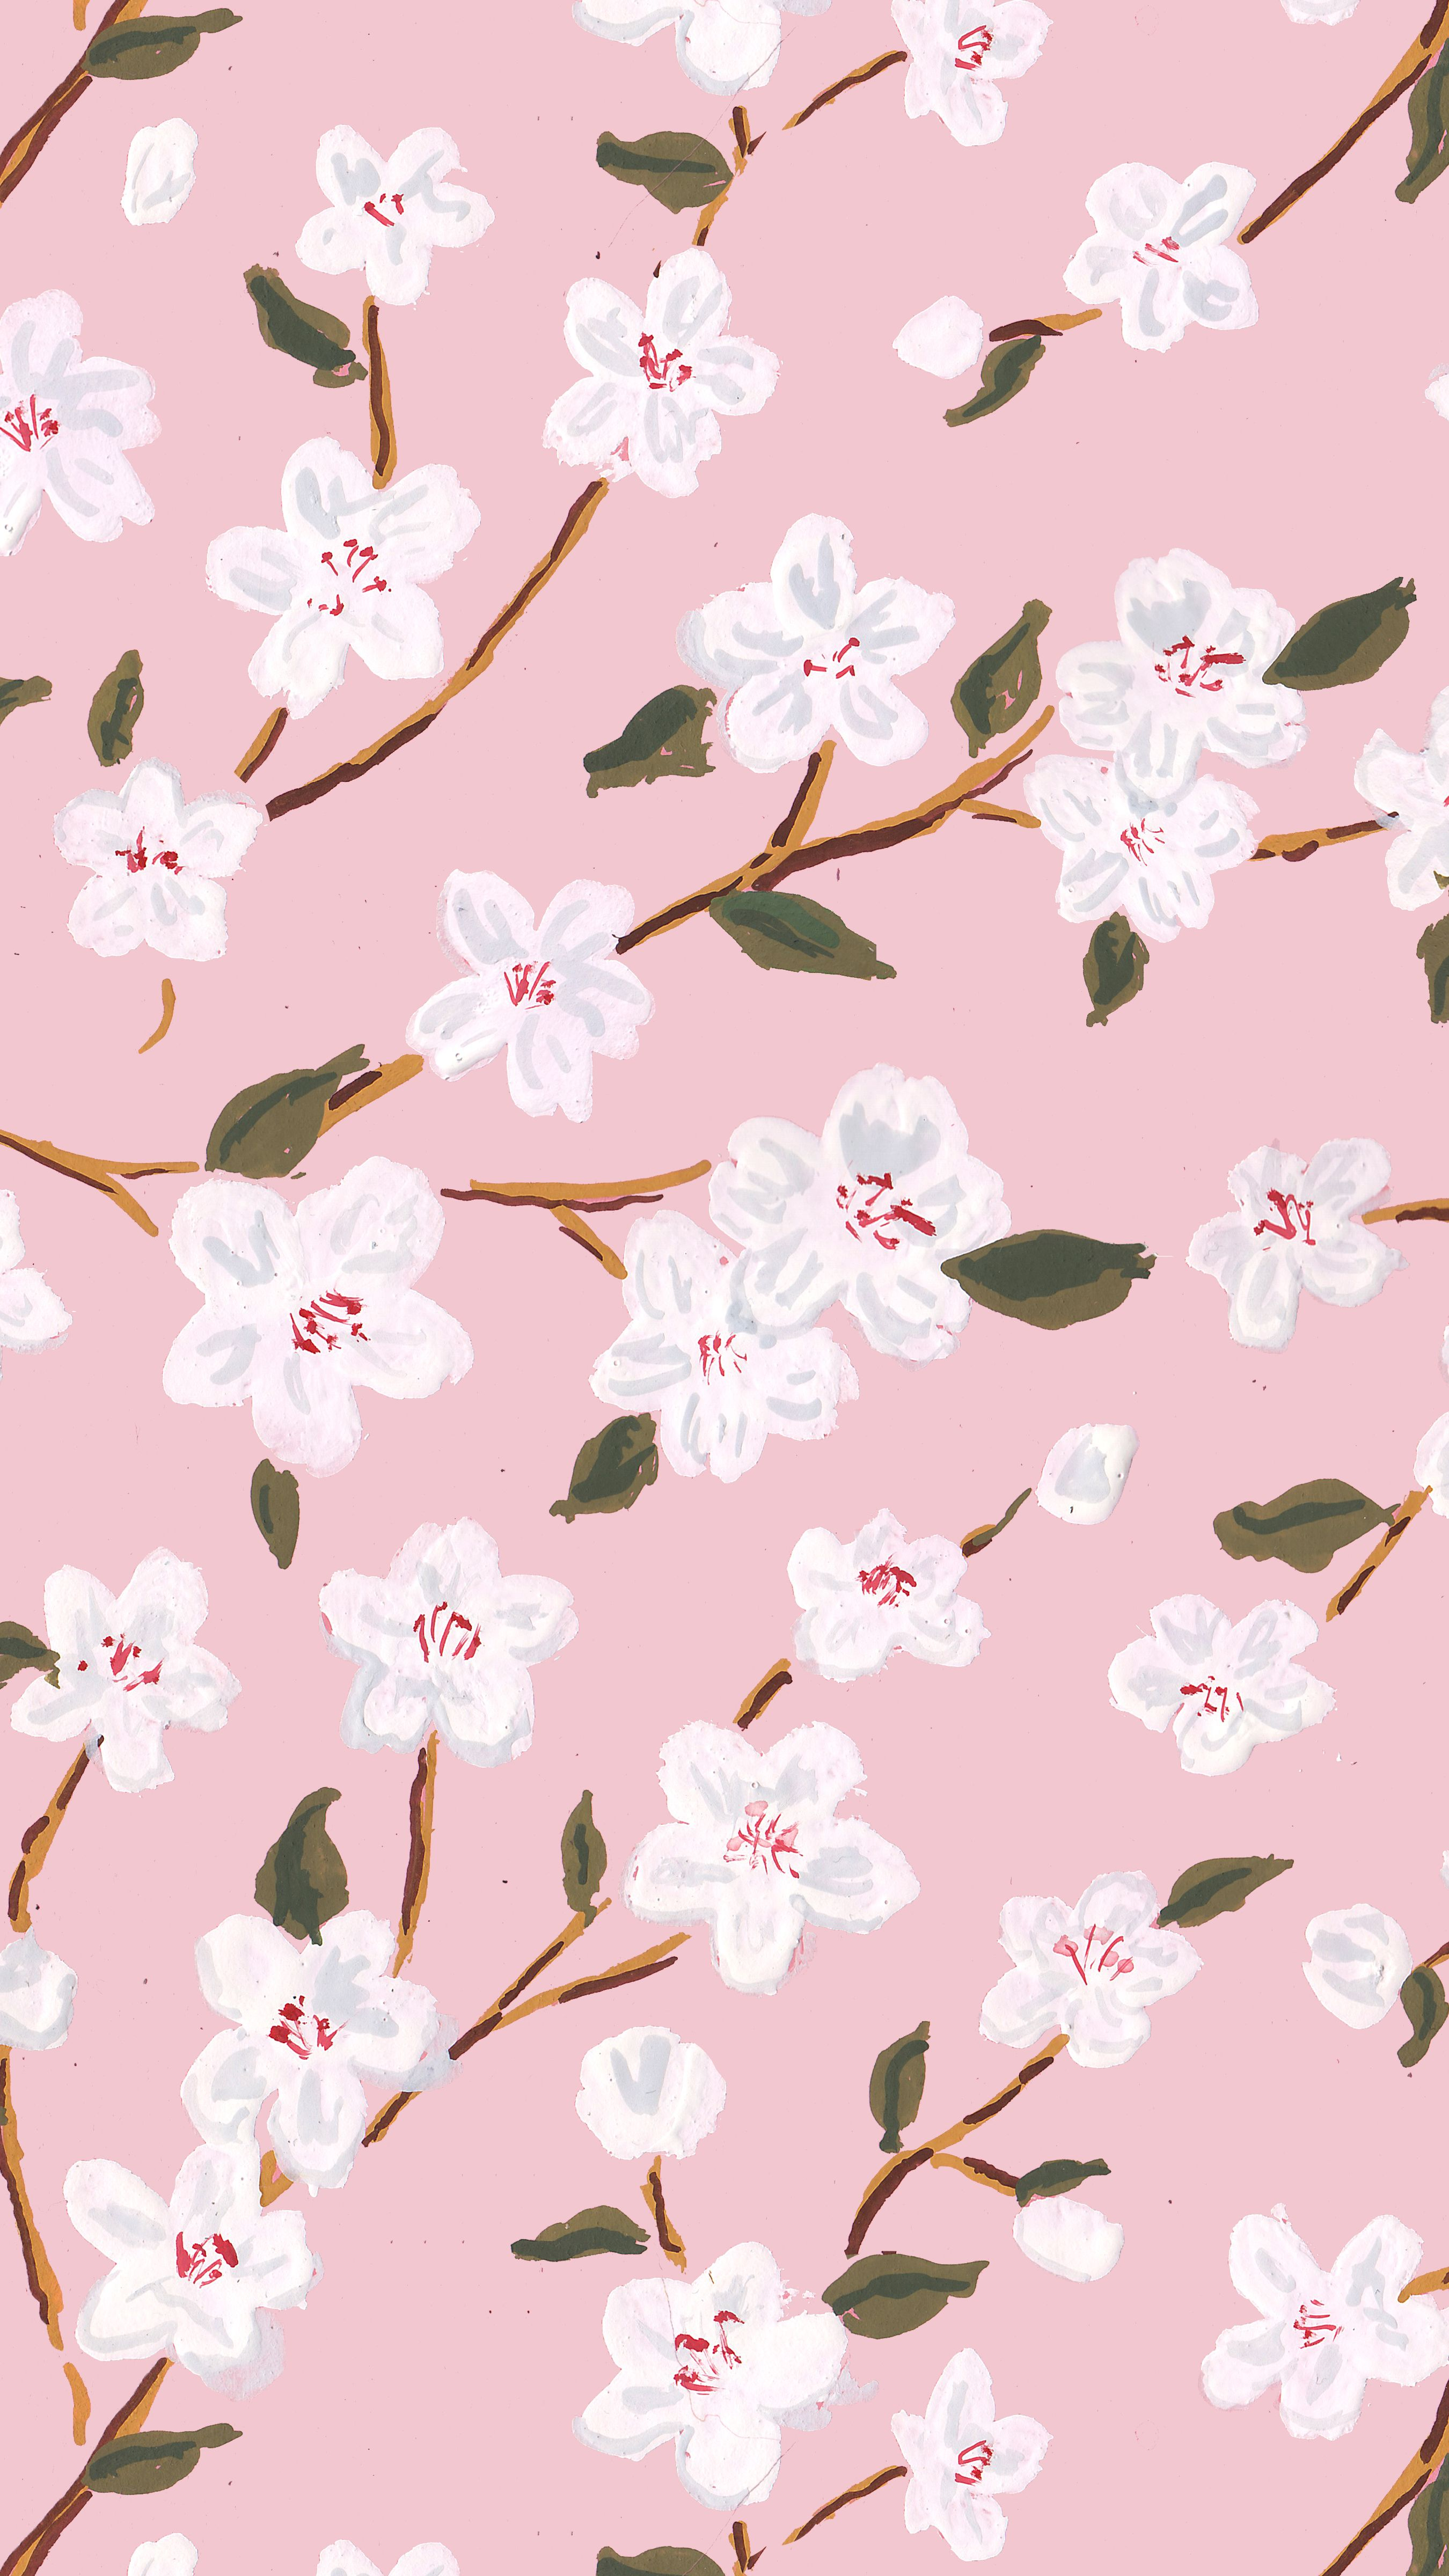 Cherry Blossoms Gift Wrap, pink wrapping paper, floral gift wrap, spring gift wrap, Easter gift wrap, floral gift wrap, flowers gif